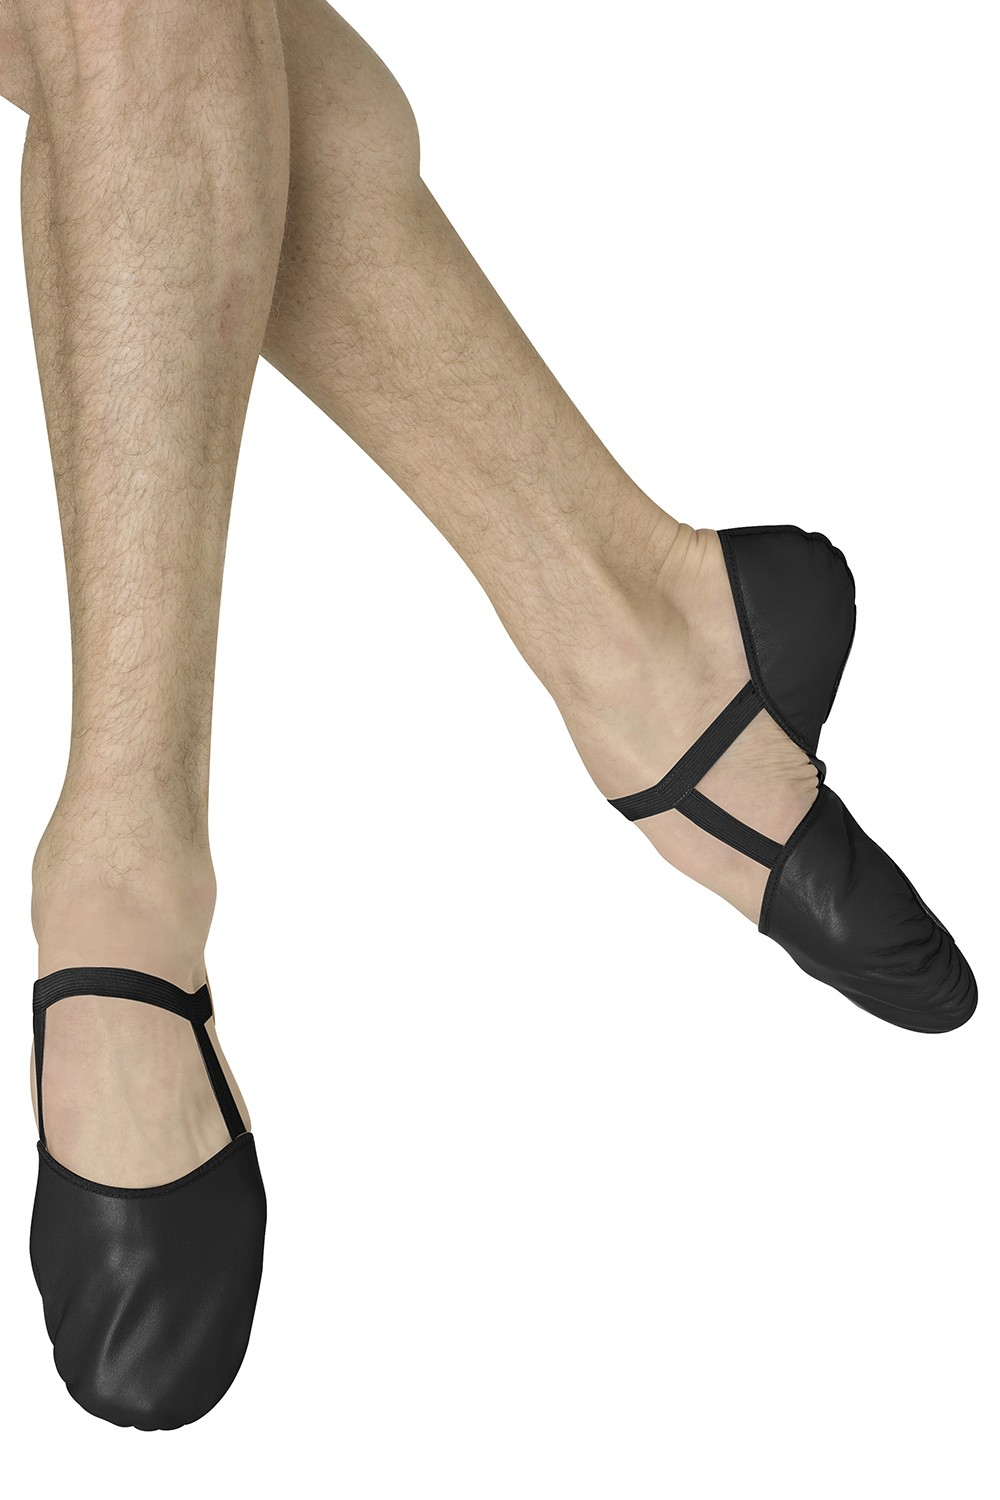 Elastosplit Pi Leather - Mens Men's Ballet Shoes